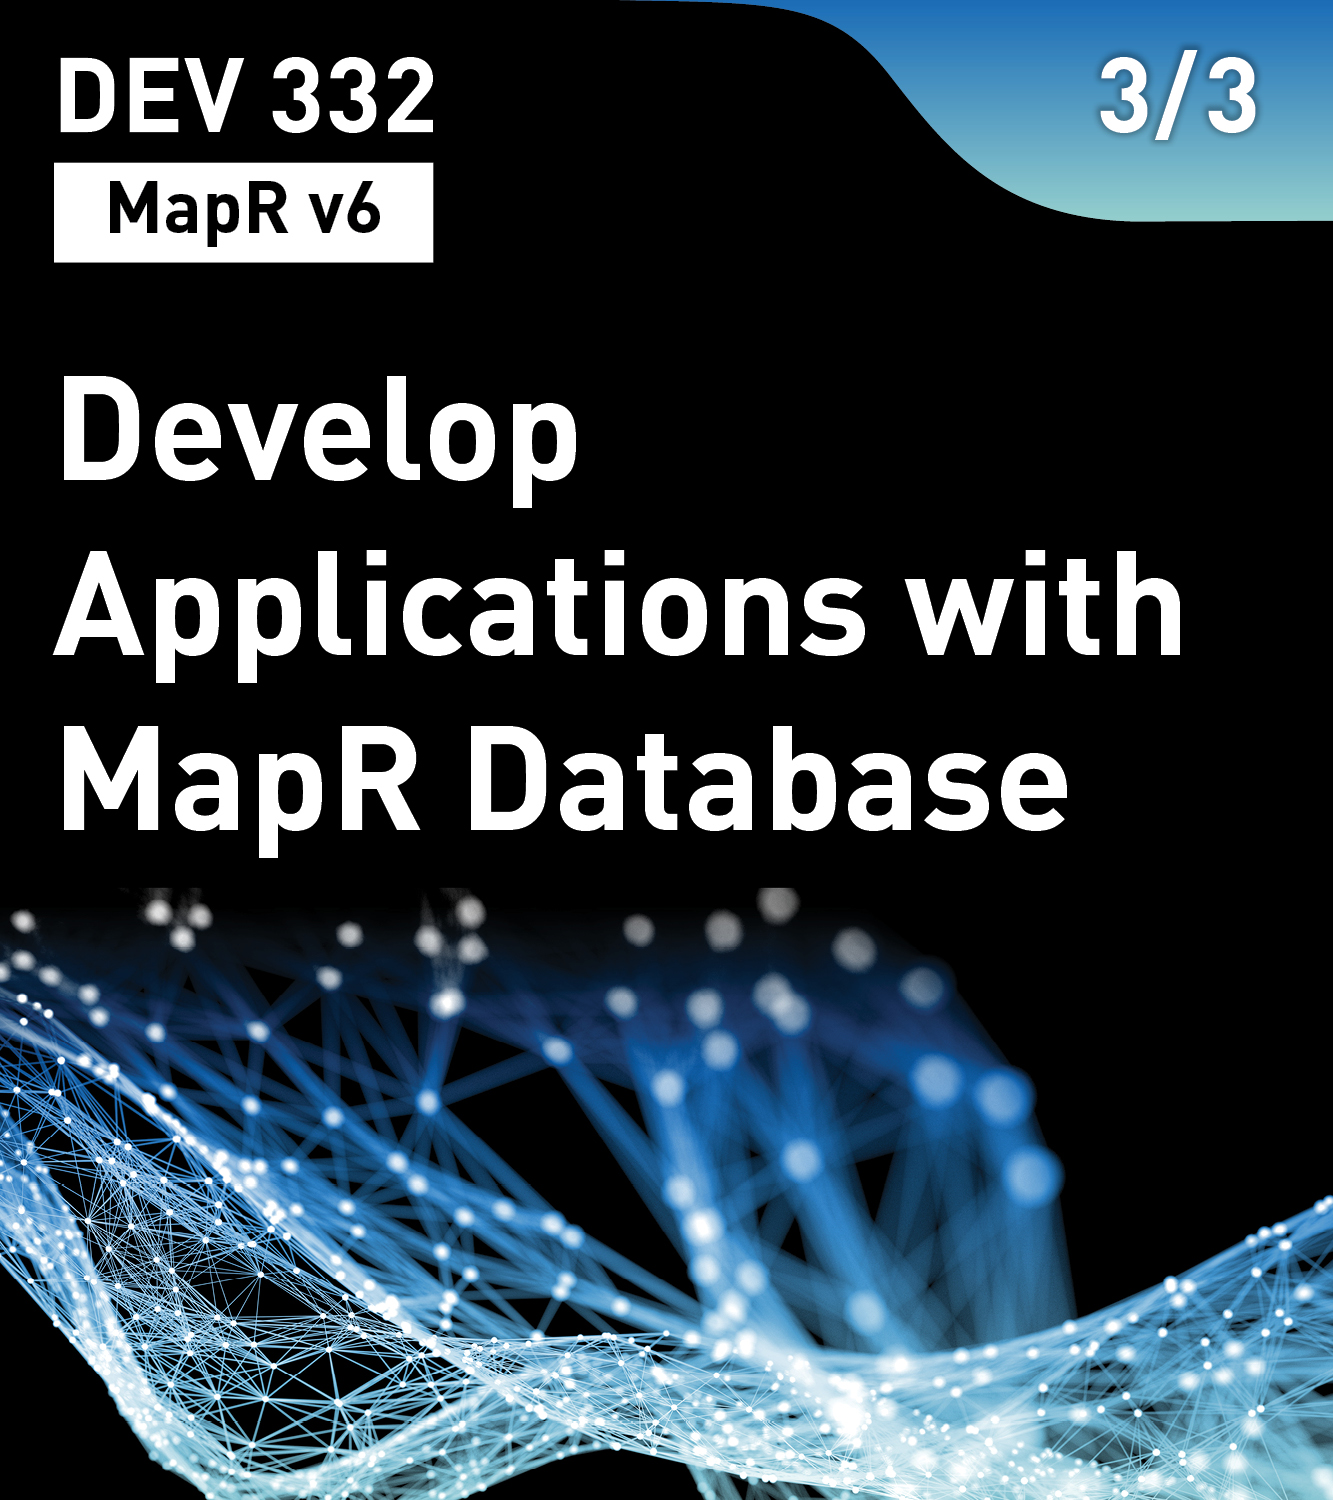 Develop Applications with MapR Database (MapR v6)